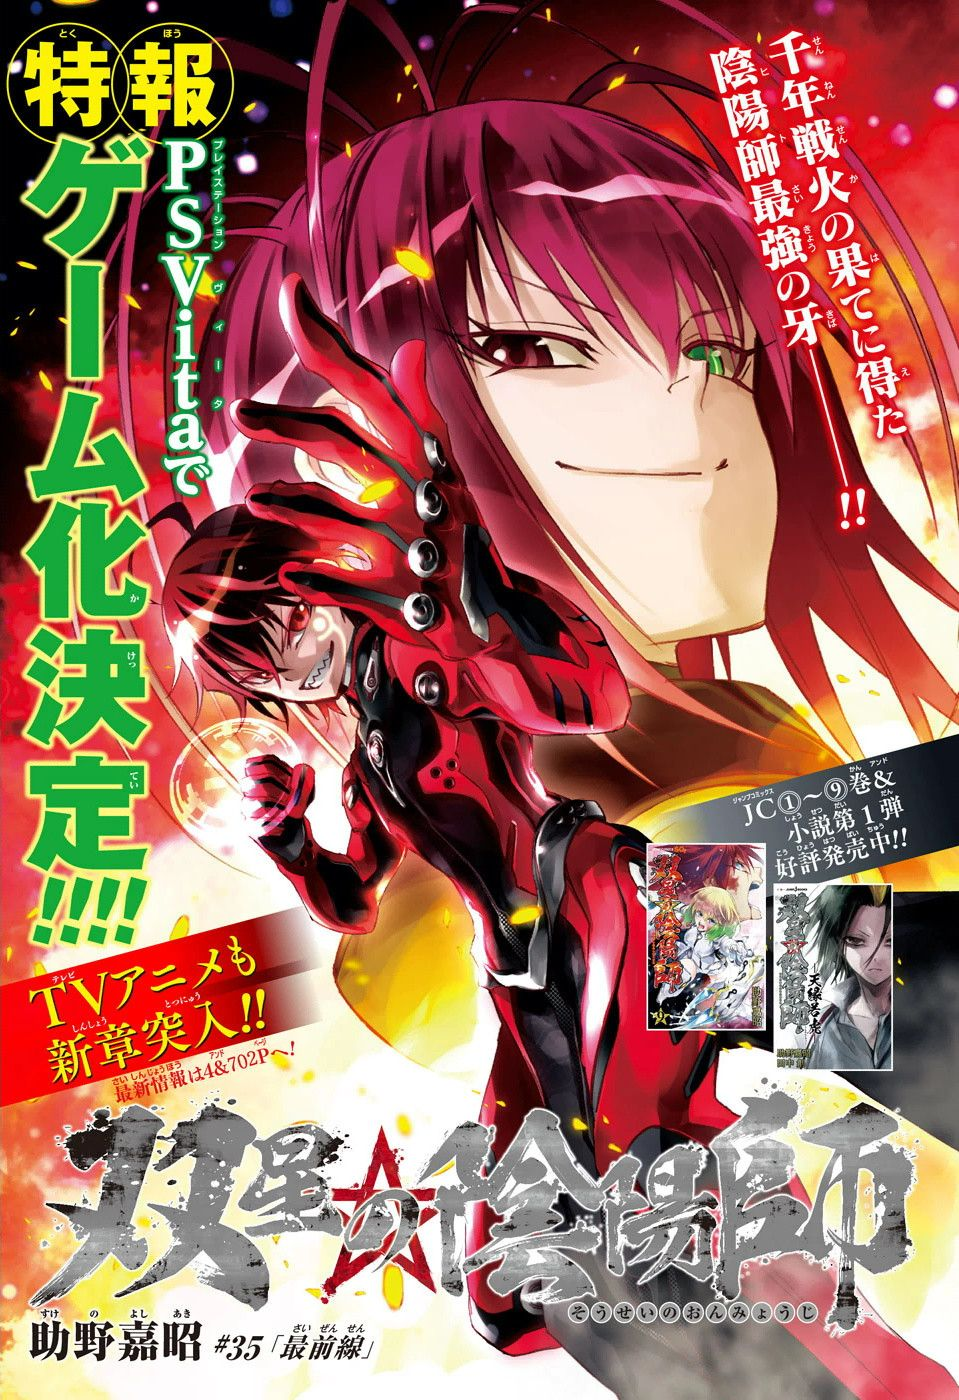 Pin on Twin star exorcists